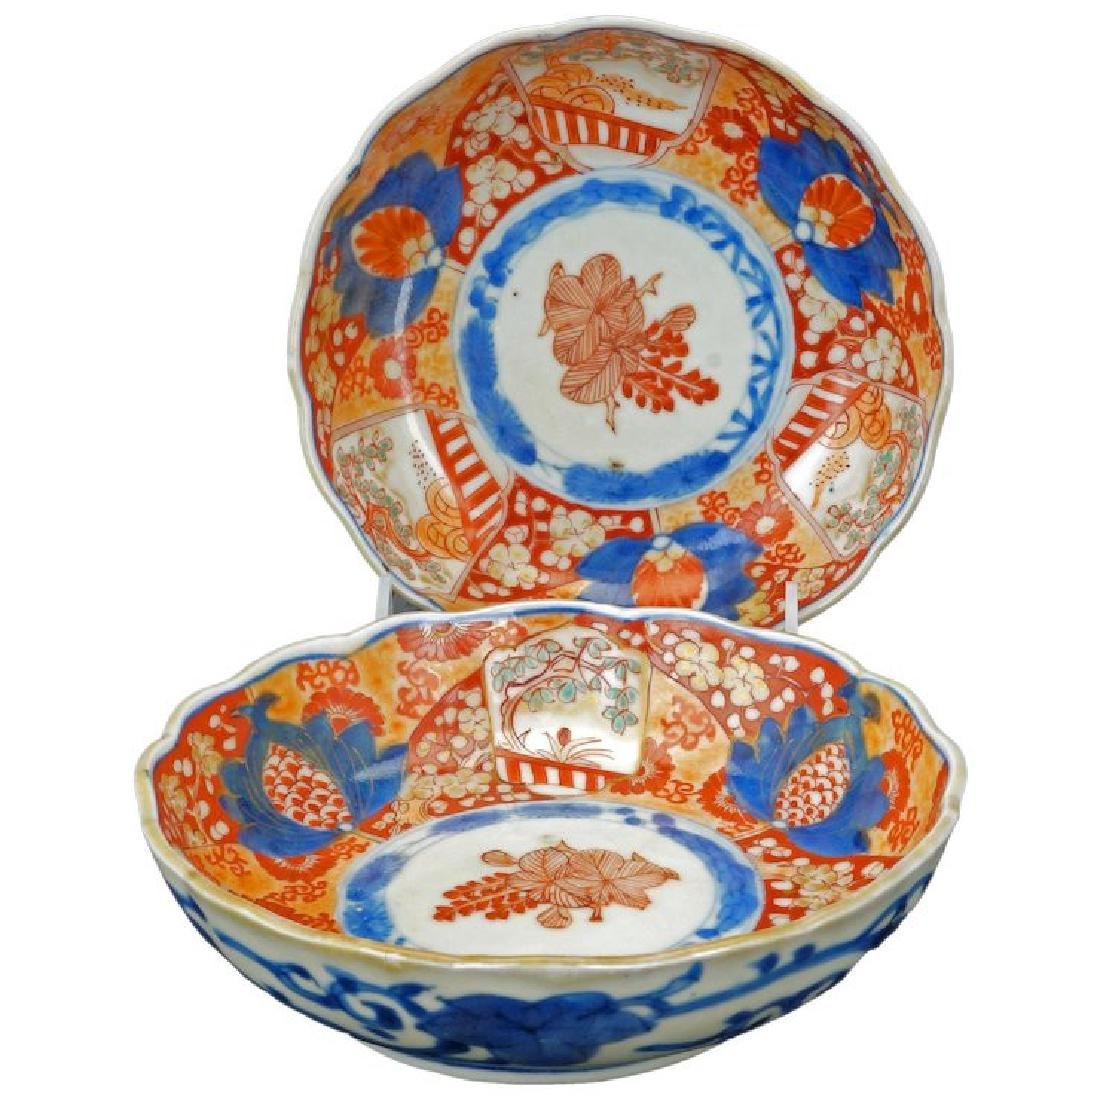 Matched pair of Japanese porcelain colored Imari bowls